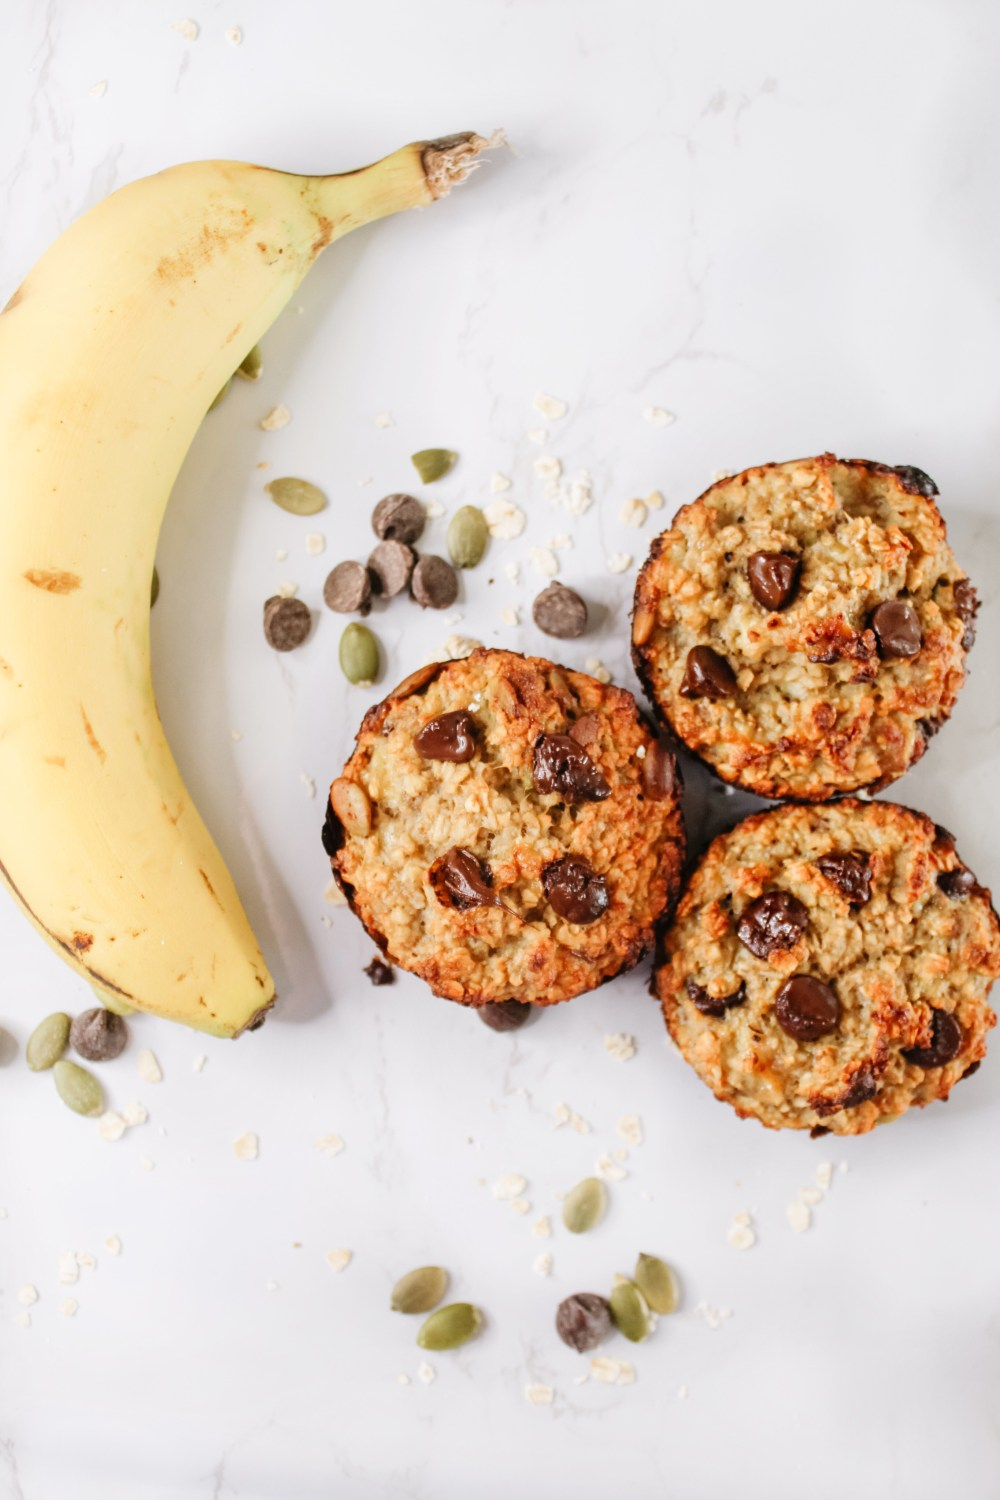 healthy banana oat muffins - sugar free and gluten free healthy muffins are a great kid friendly snack